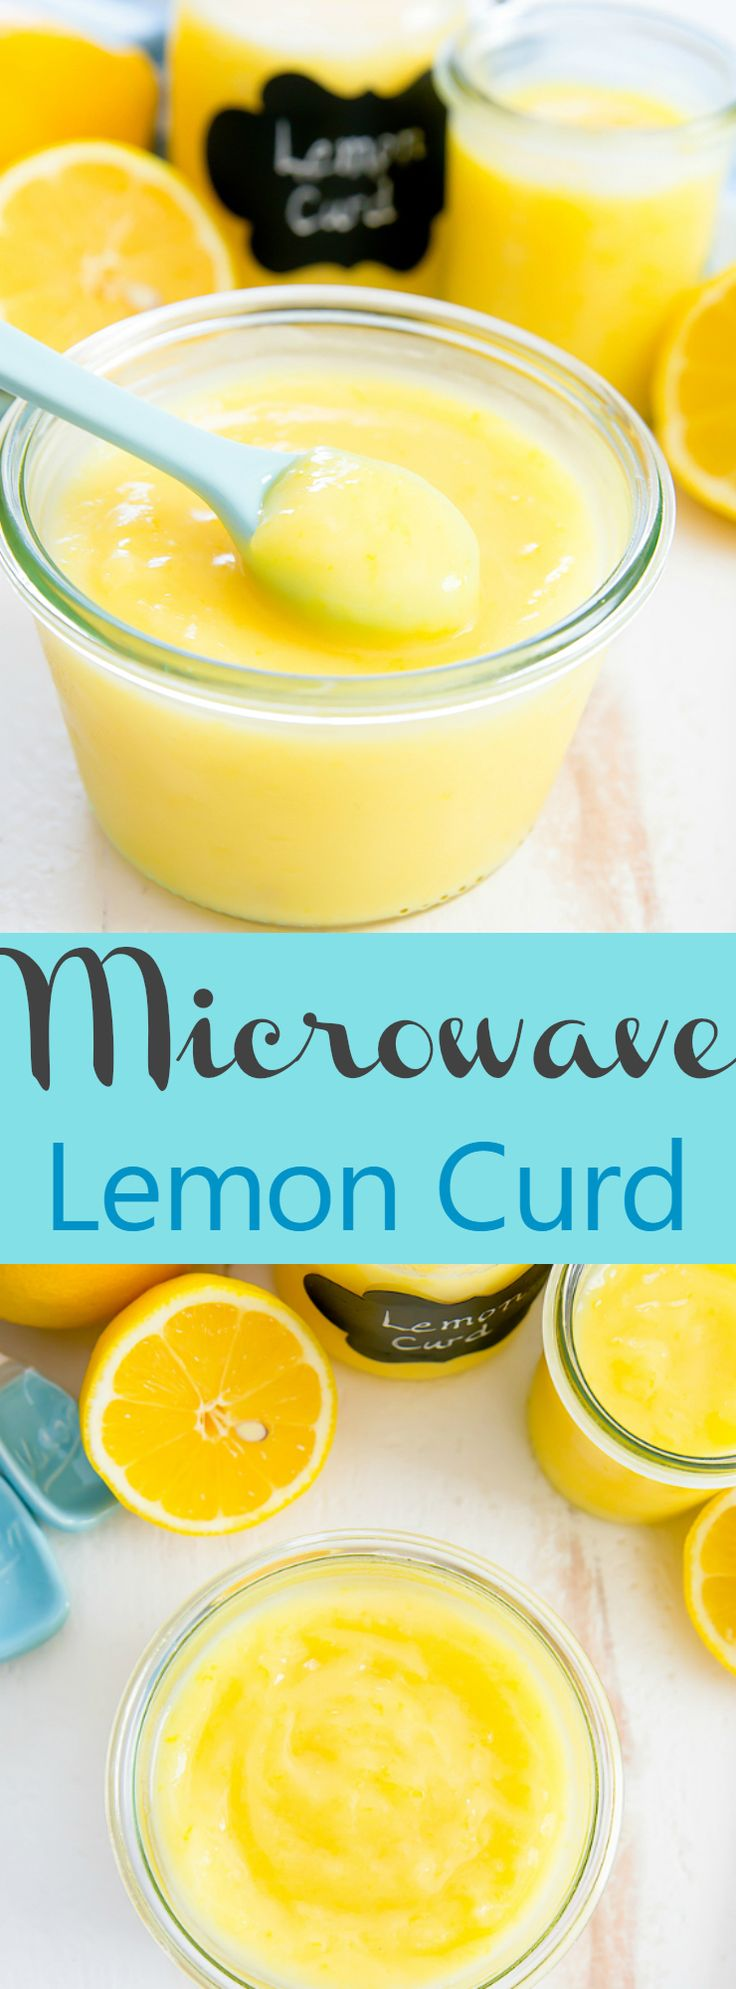 Microwave Lemon Curd. Cooks in 5 minutes.